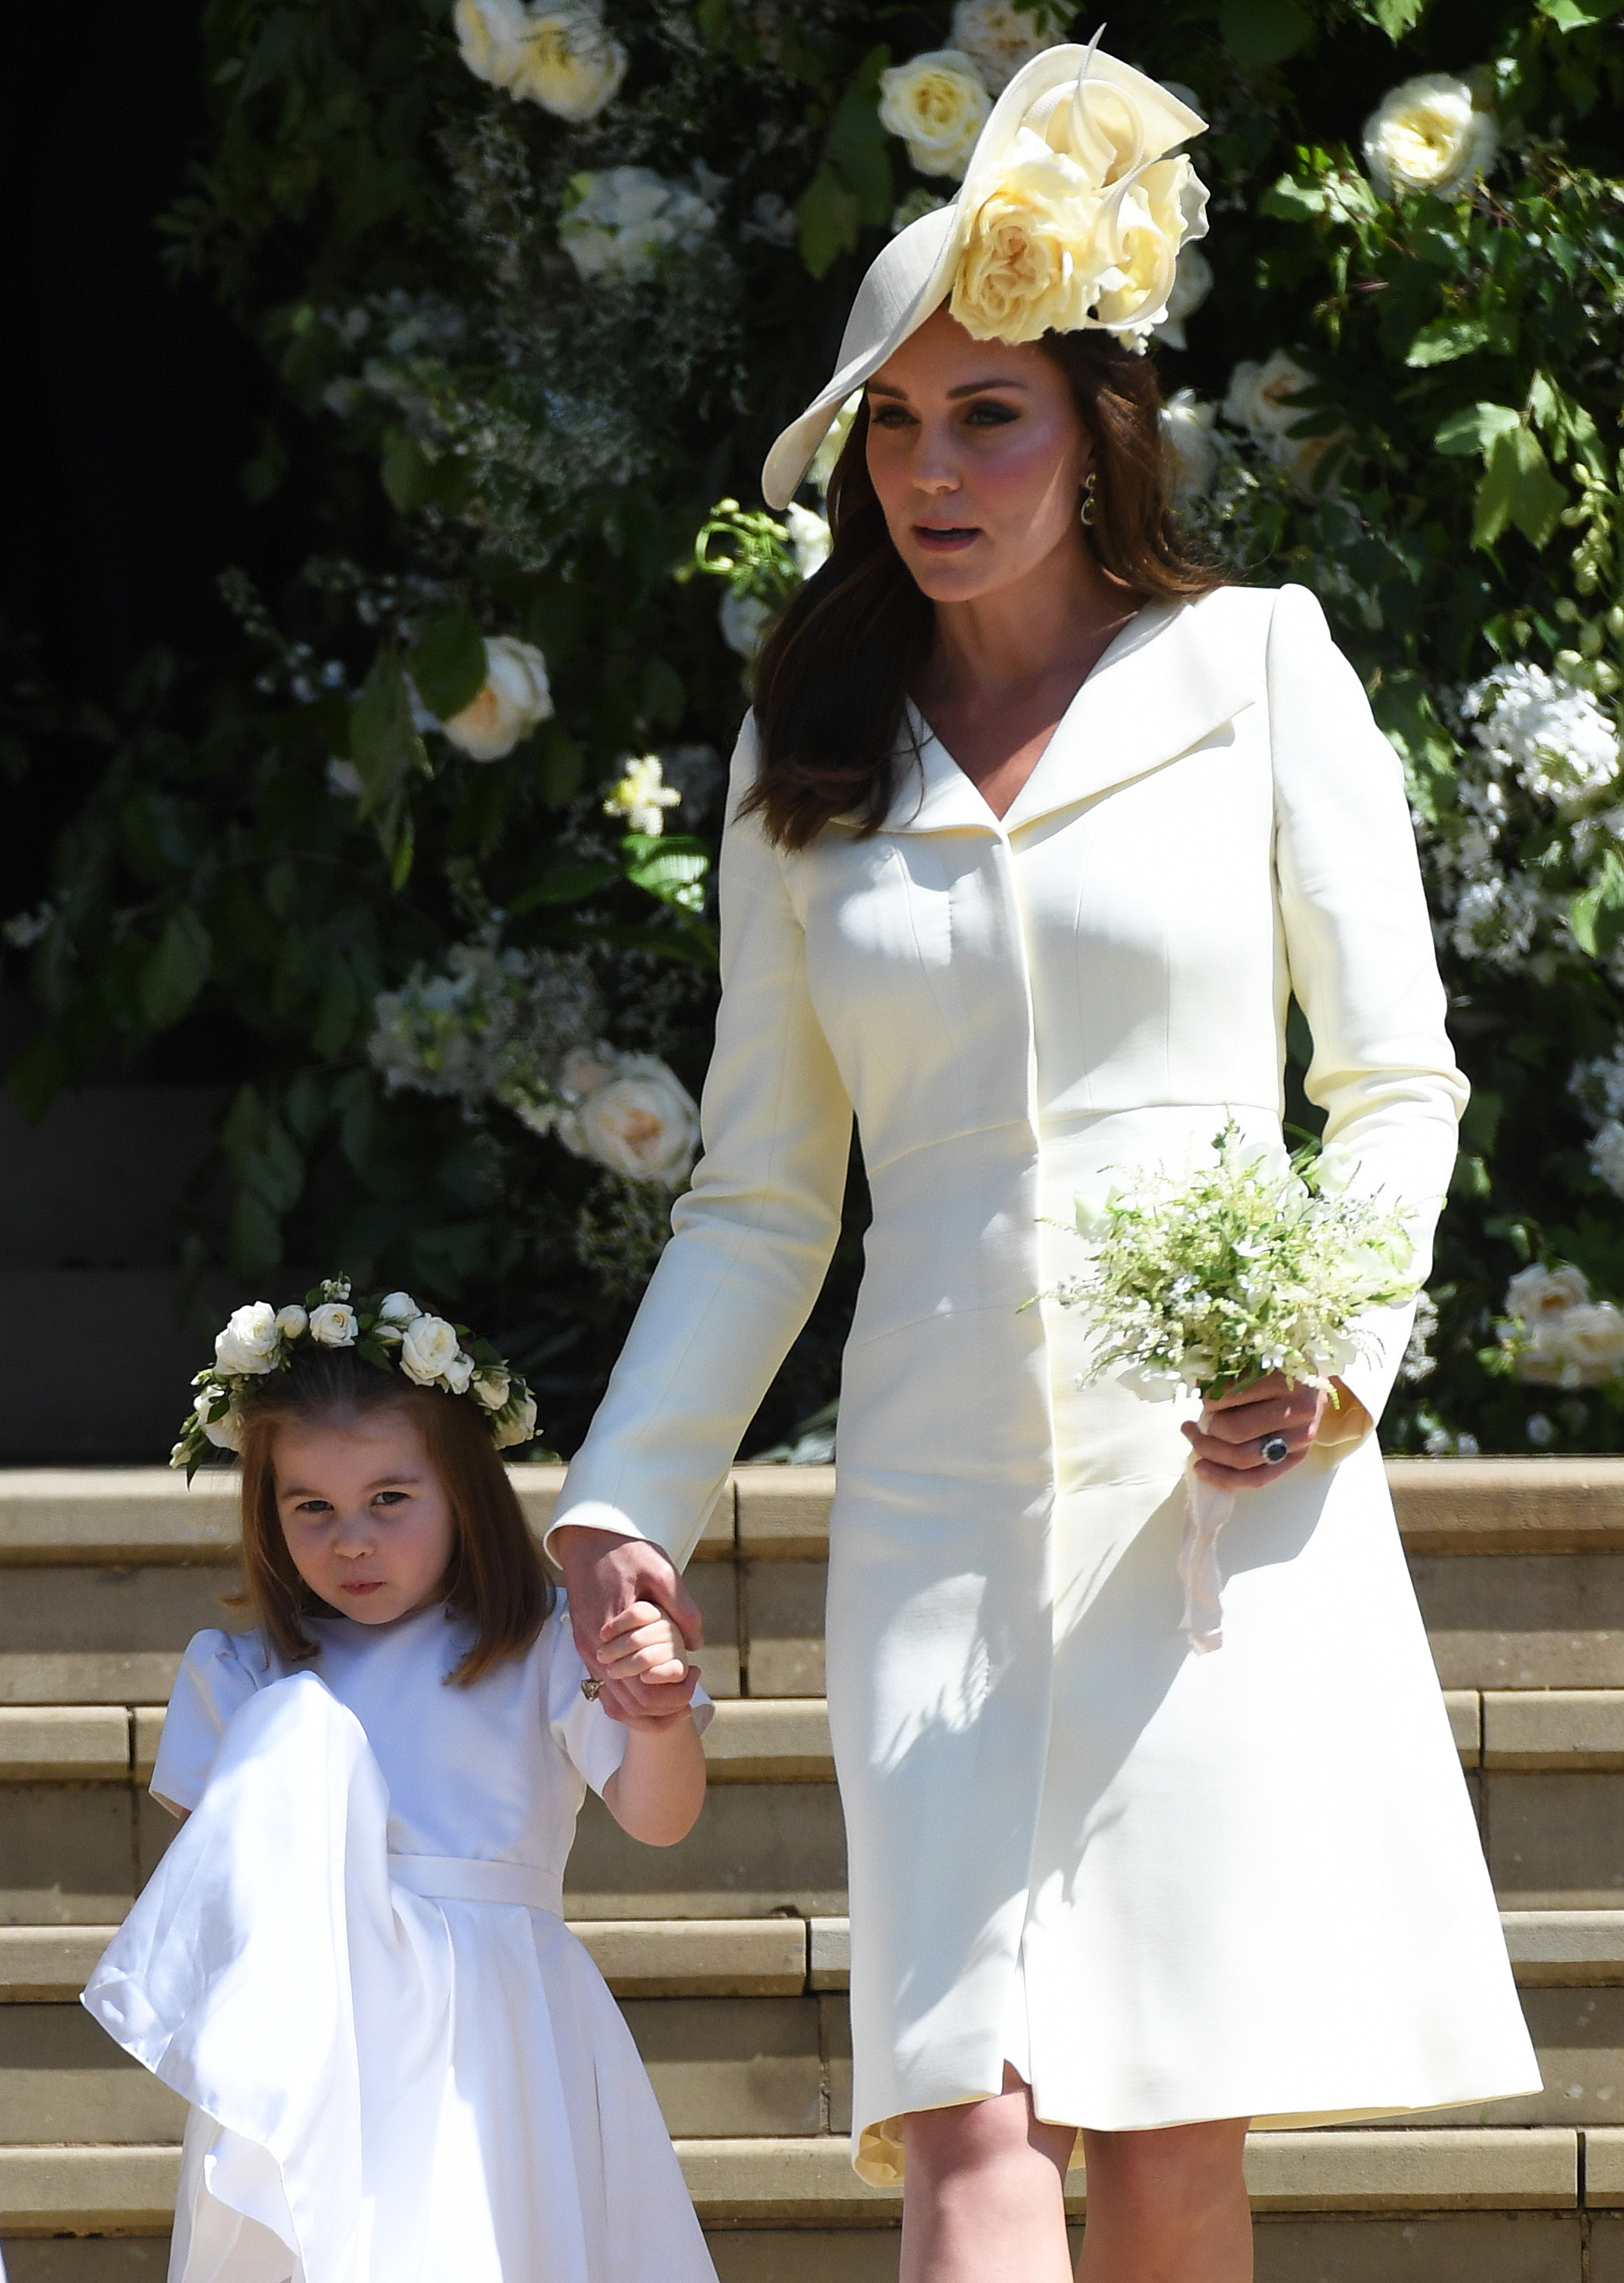 Catherine Duchess of Cambridge and her daughter Princess Charlotte leave St George's Chapel in Windsor Castle after the royal wedding ceremony in Windsor, UK on May 19, 2018.